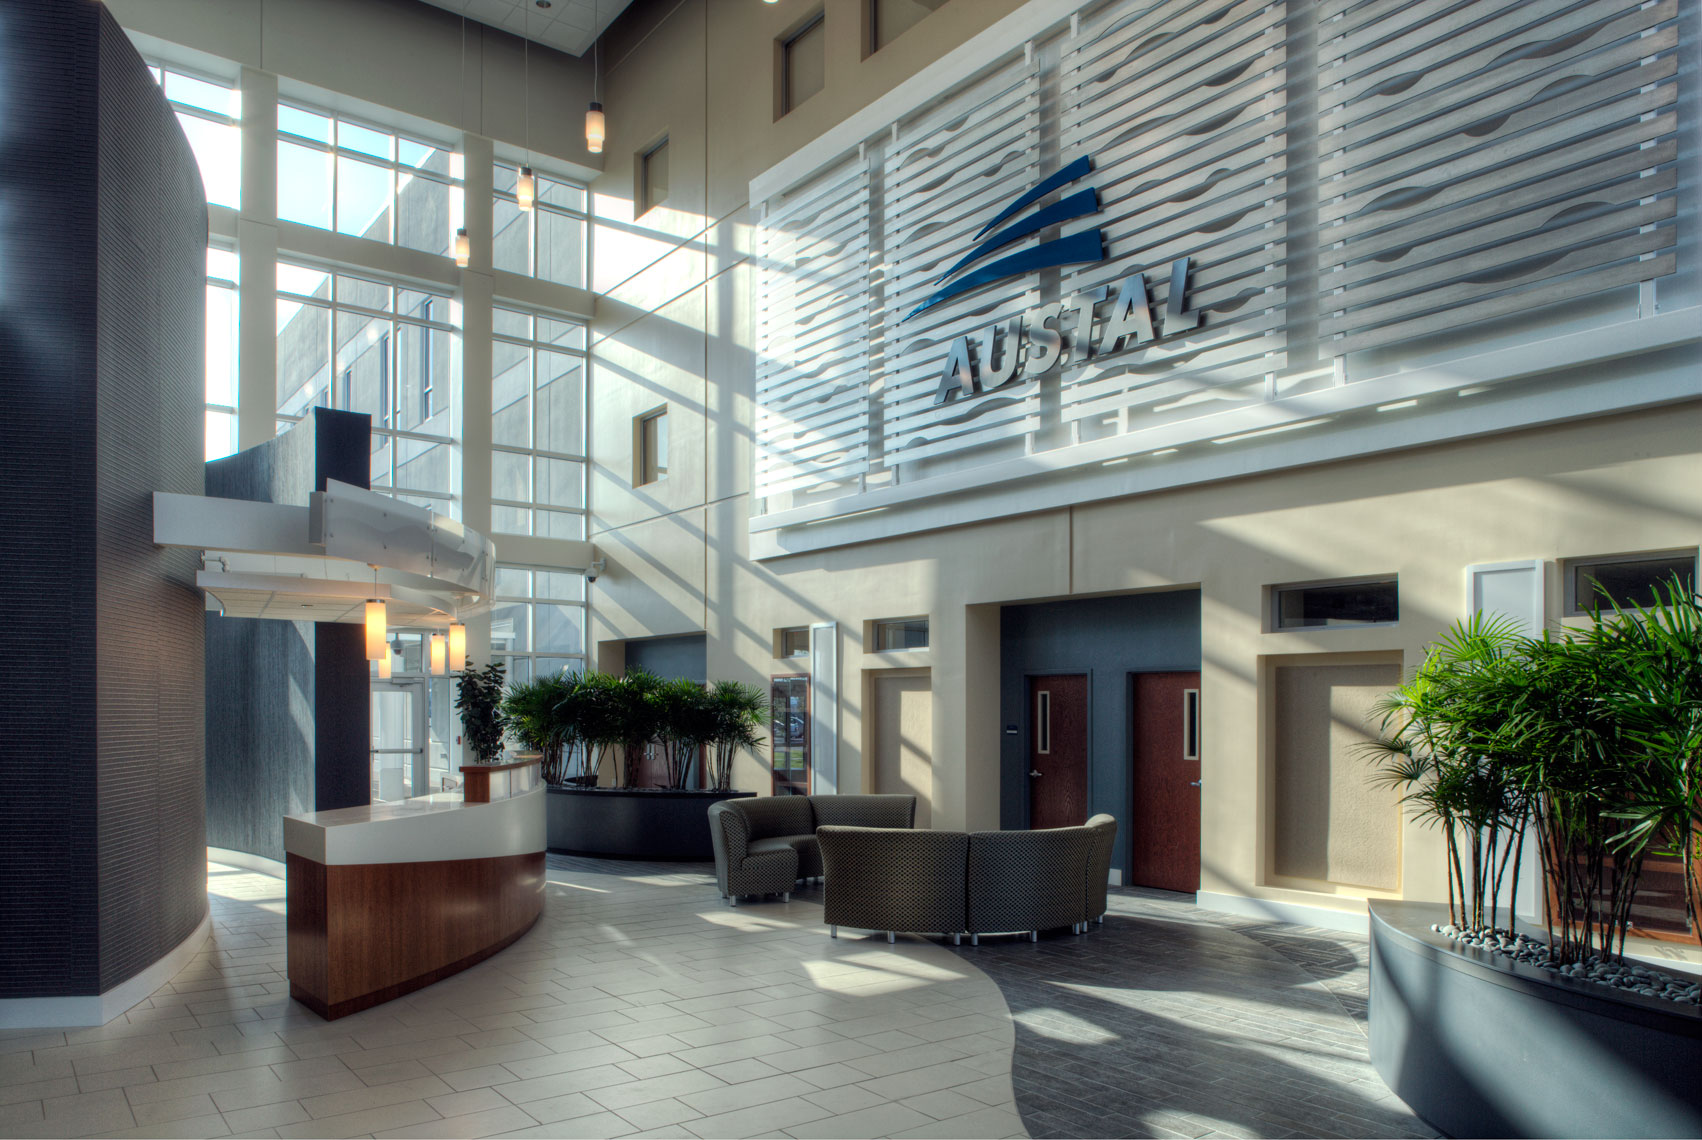 Sunlit atrium and reception at Austal USA